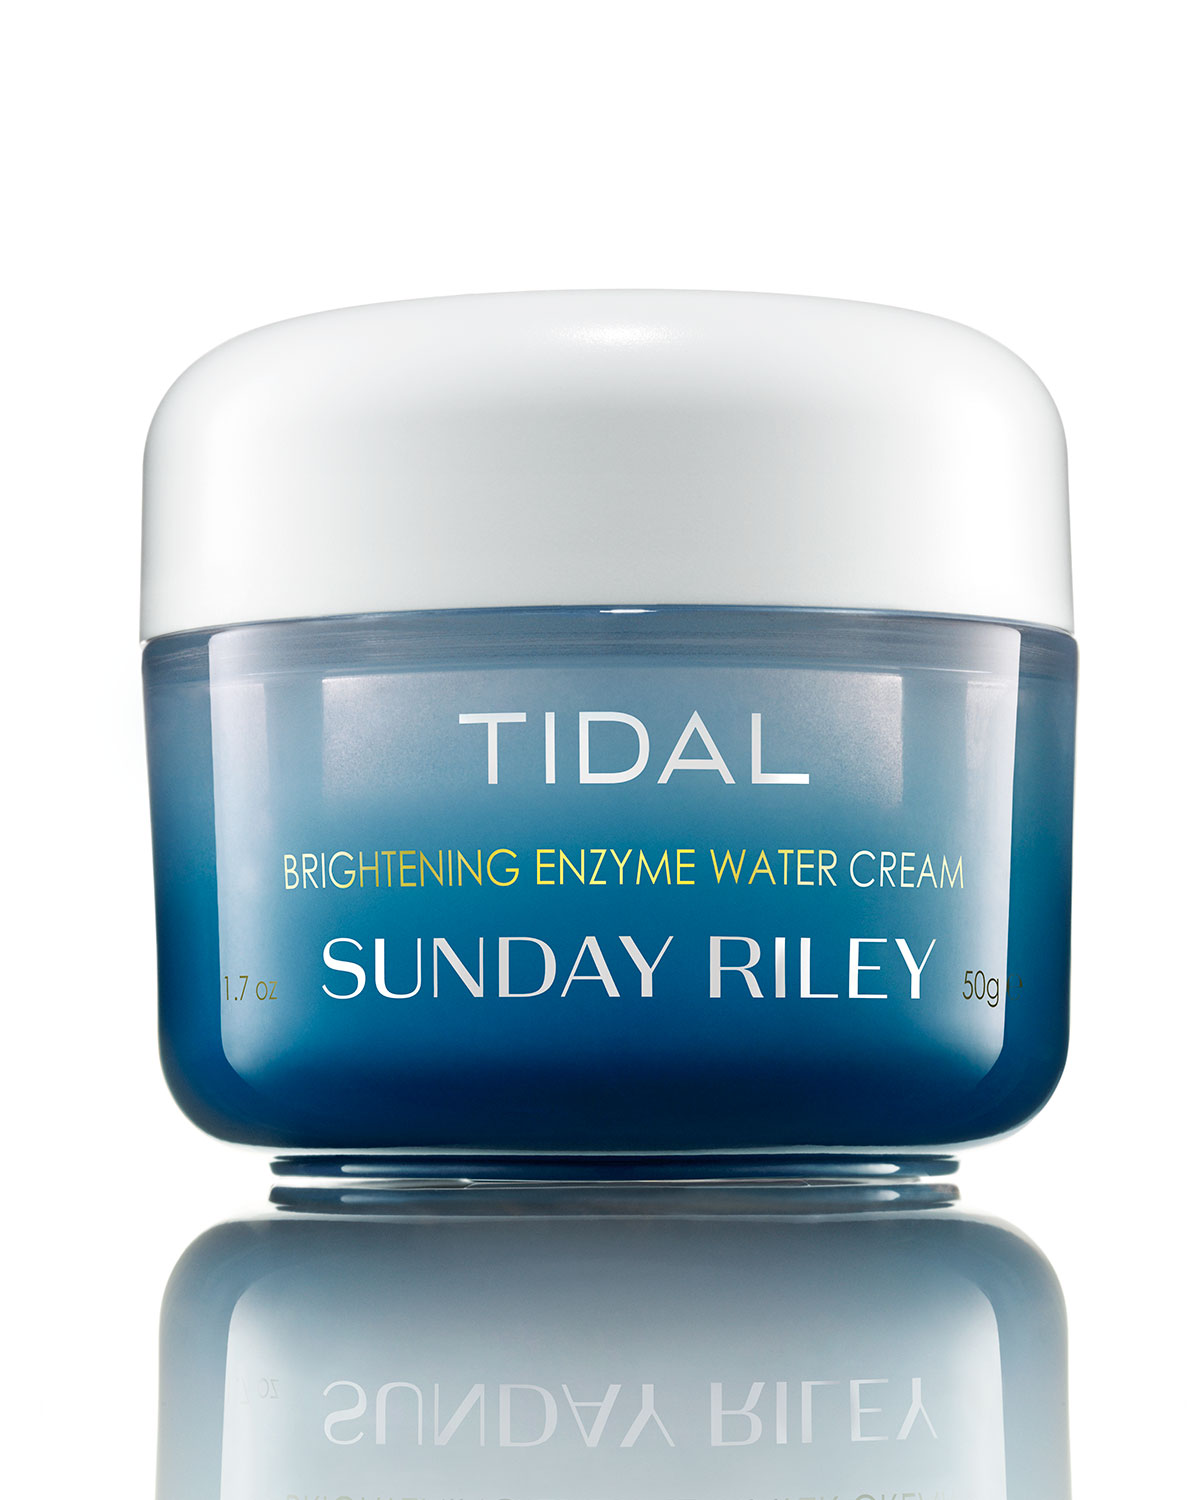 SUNDAY RILEY MODERN SKINCARE Tidal Brightening Enzyme Water Cream, 1.7 Oz./ 50 Ml